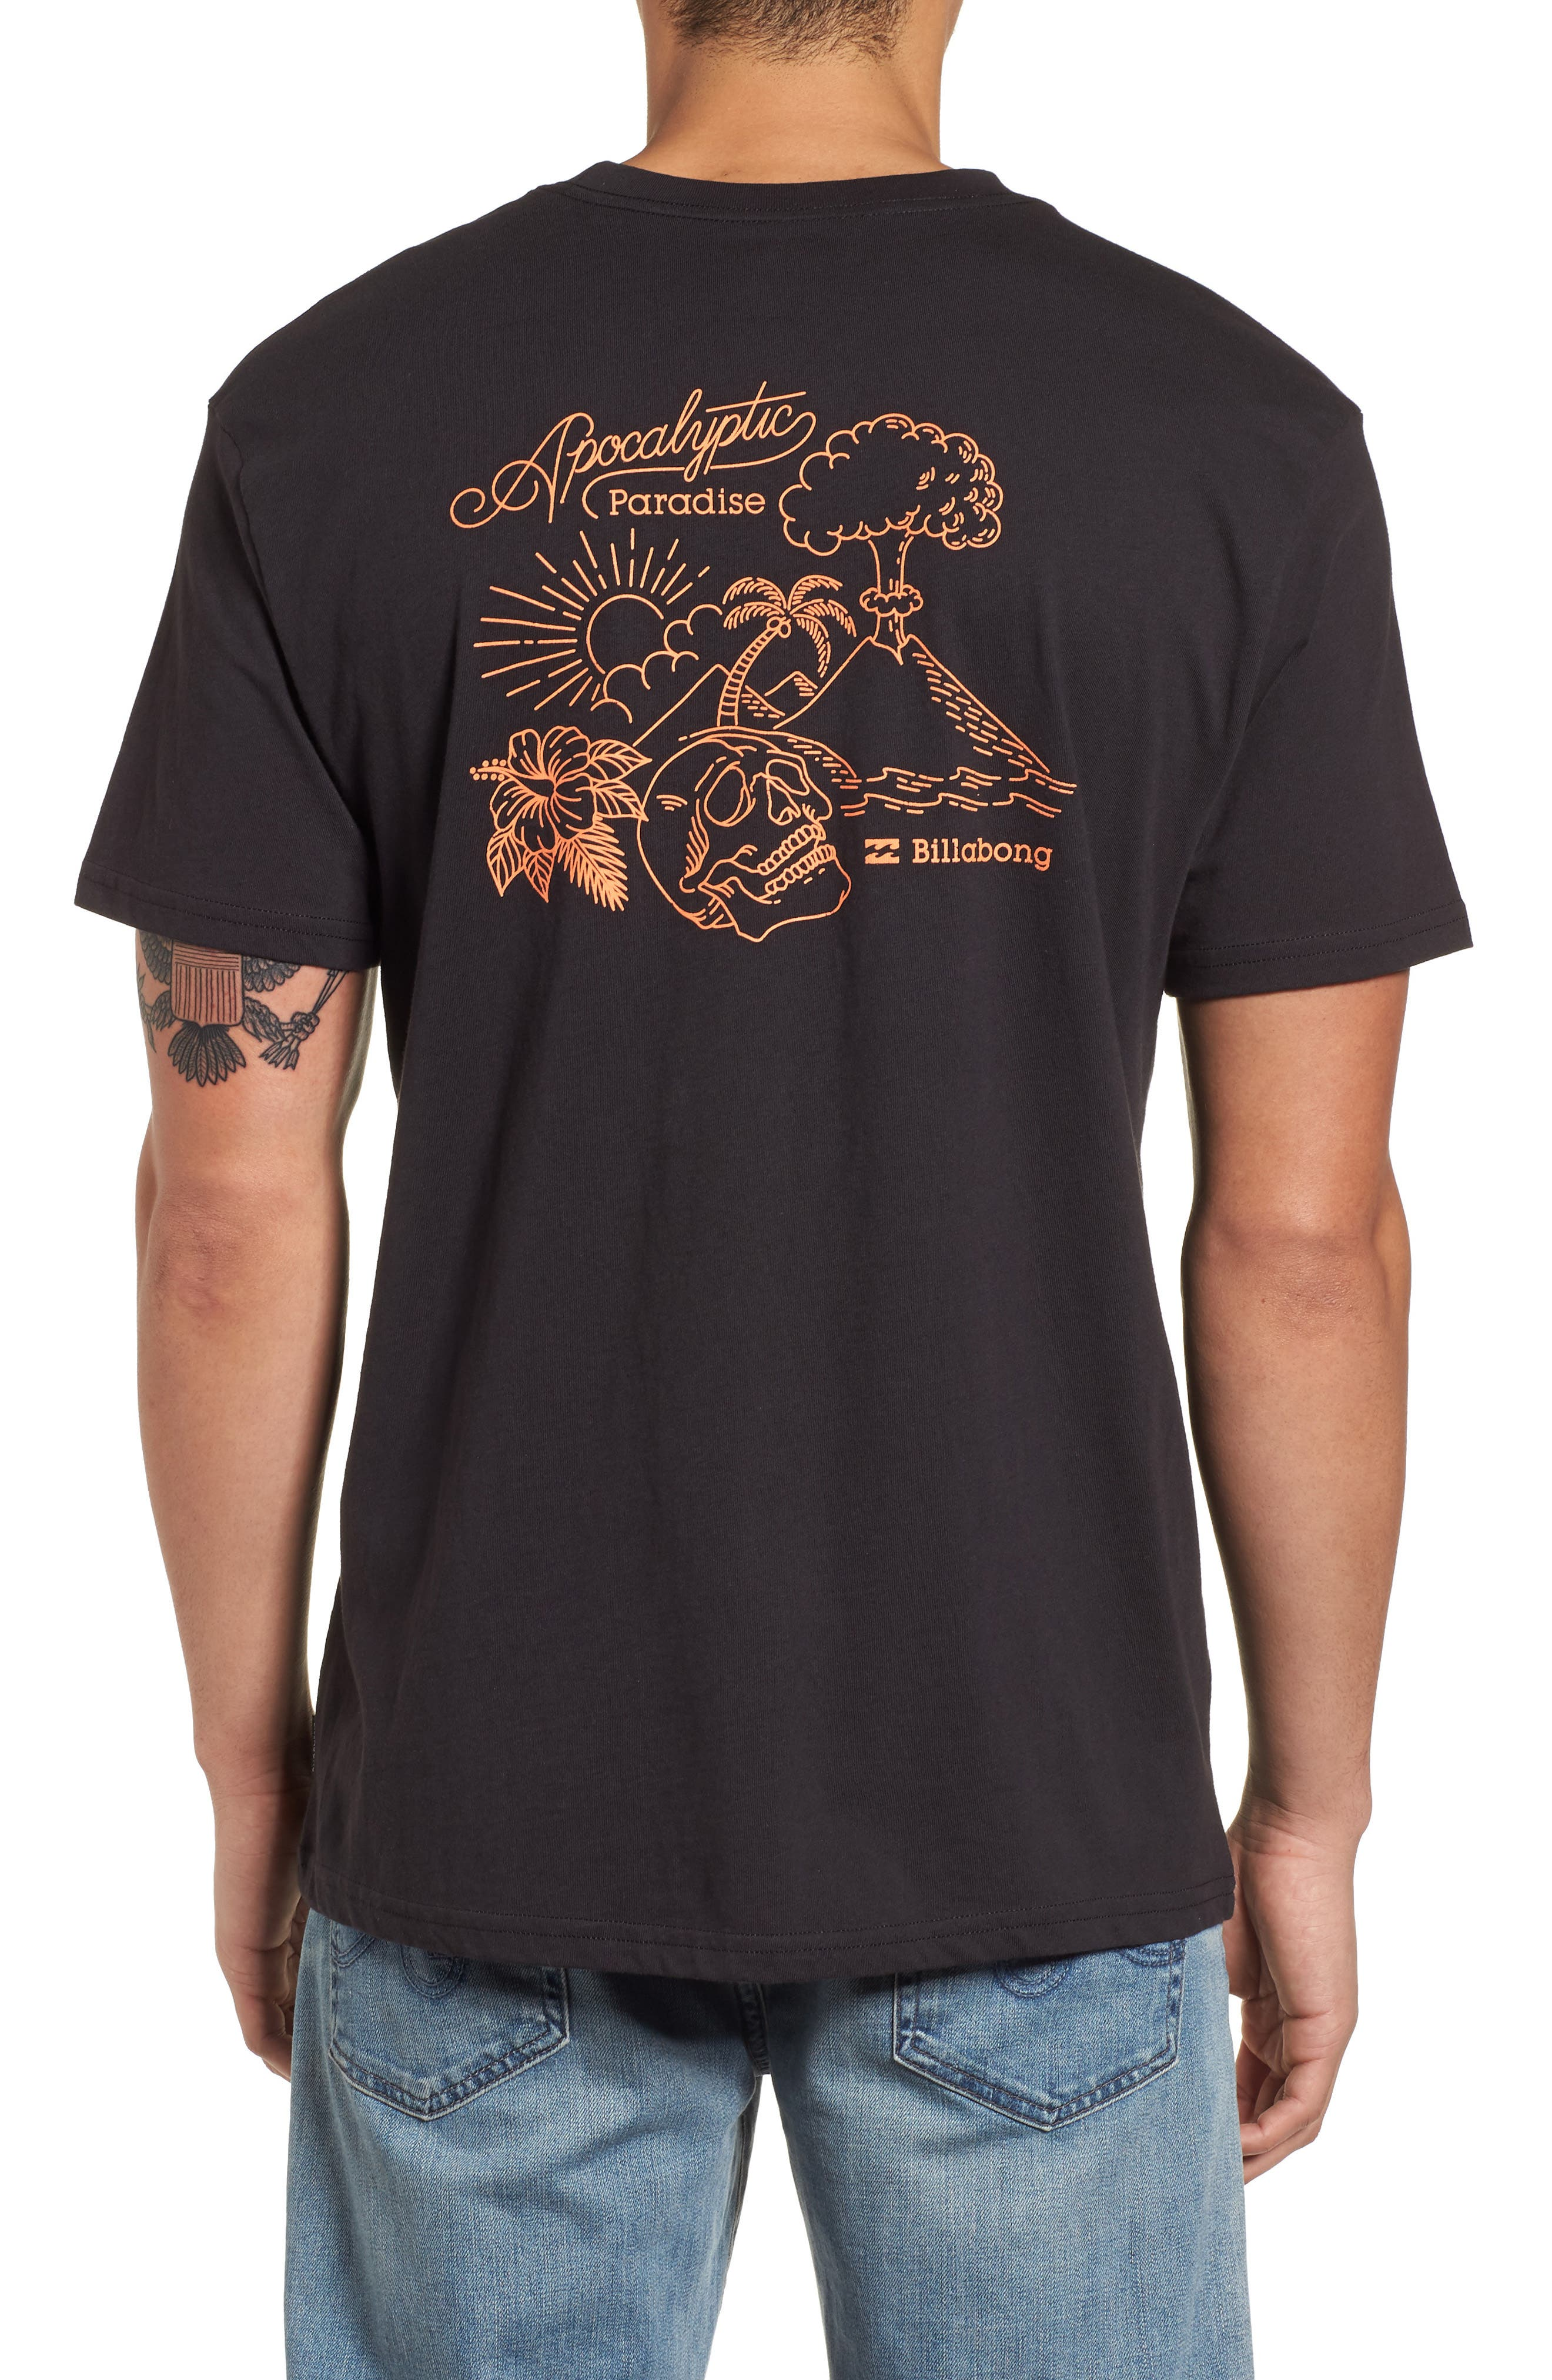 Apocalyptic Graphic T-Shirt,                             Alternate thumbnail 2, color,                             Black